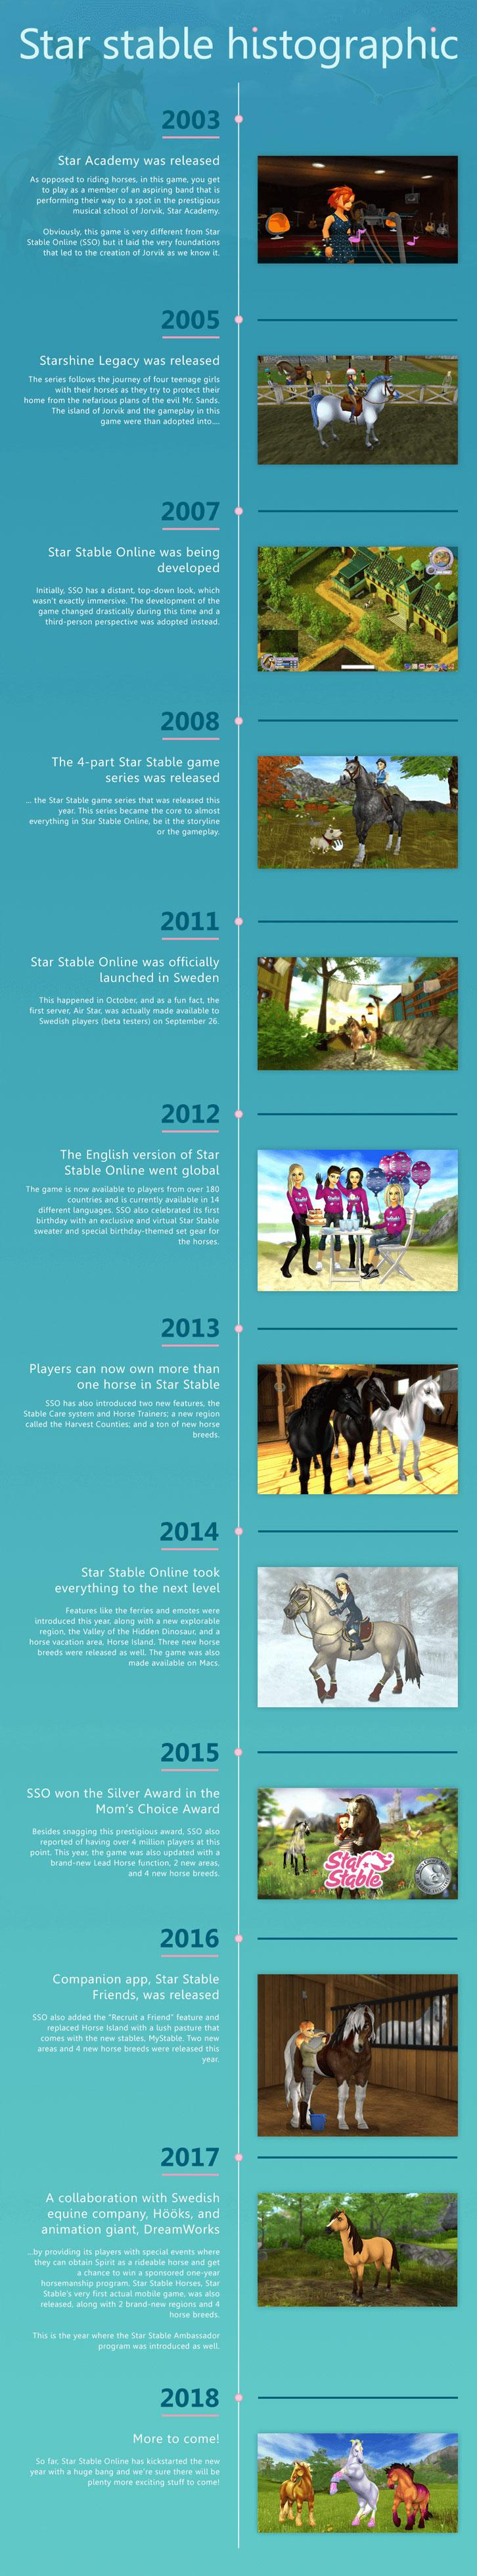 History of Star Stable Online Infographic